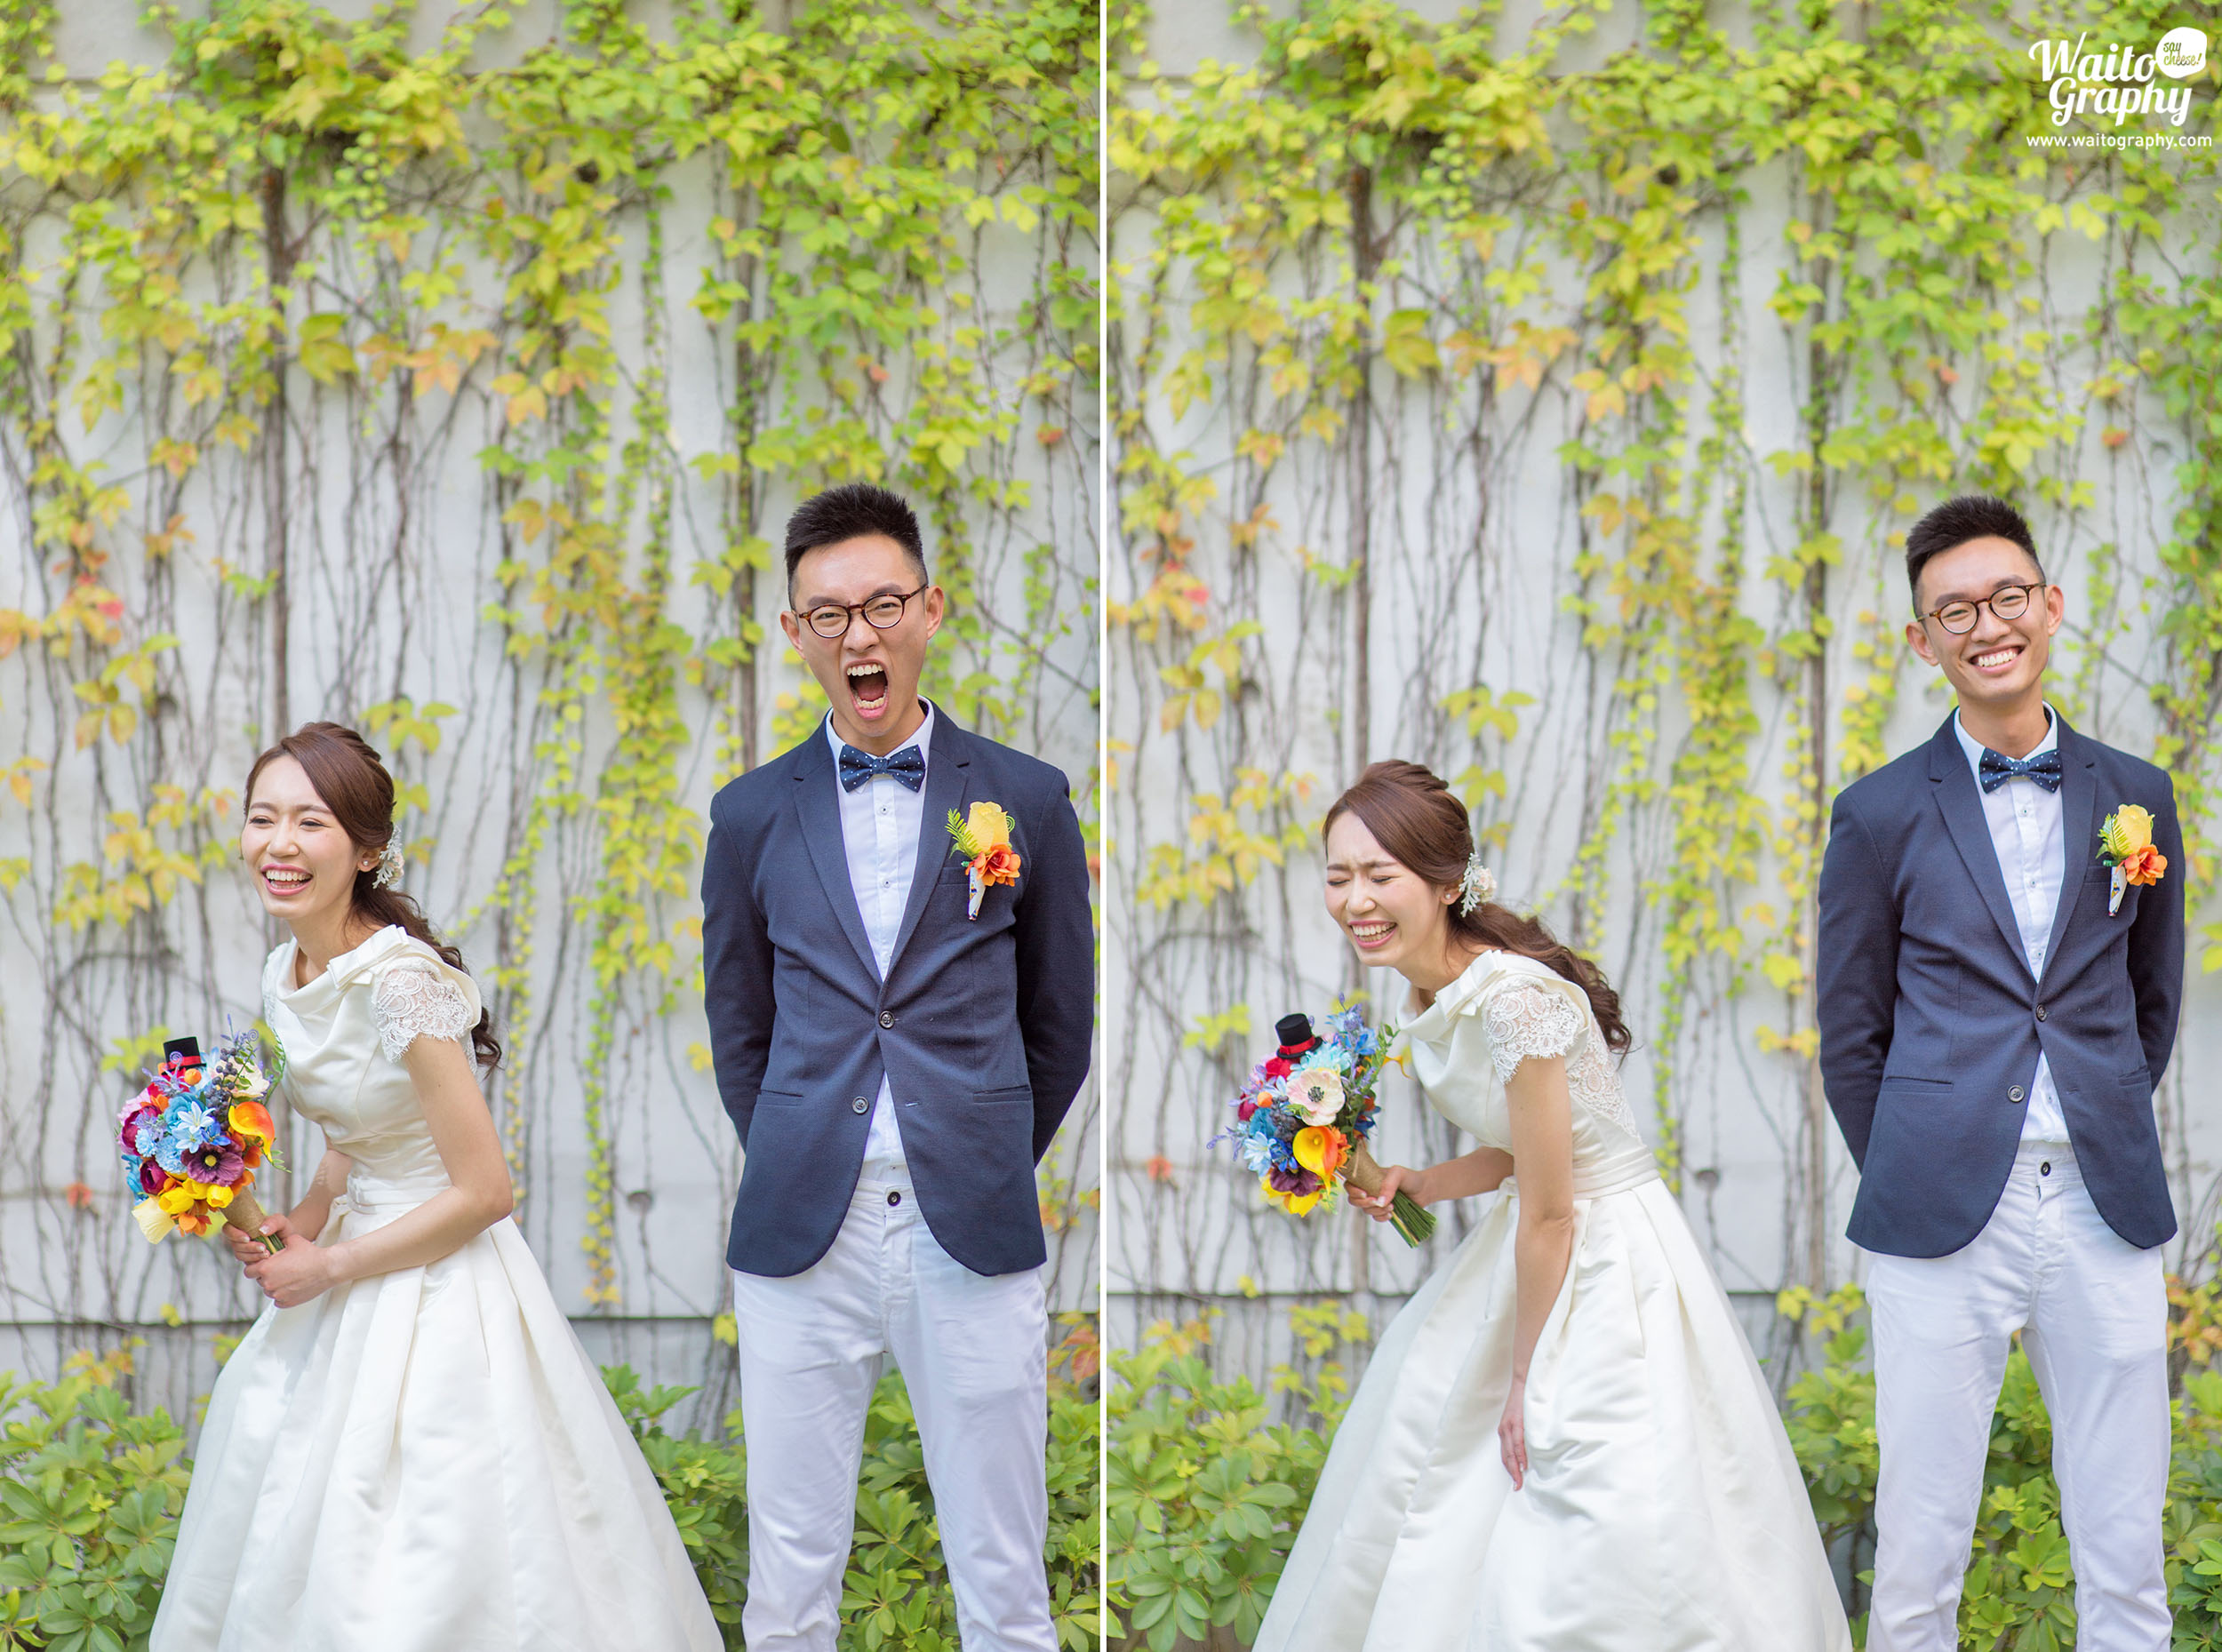 Newly wedded couples showing joyous moment at the Hong Kong wedding located at Zero Carbon Building ZCB HK